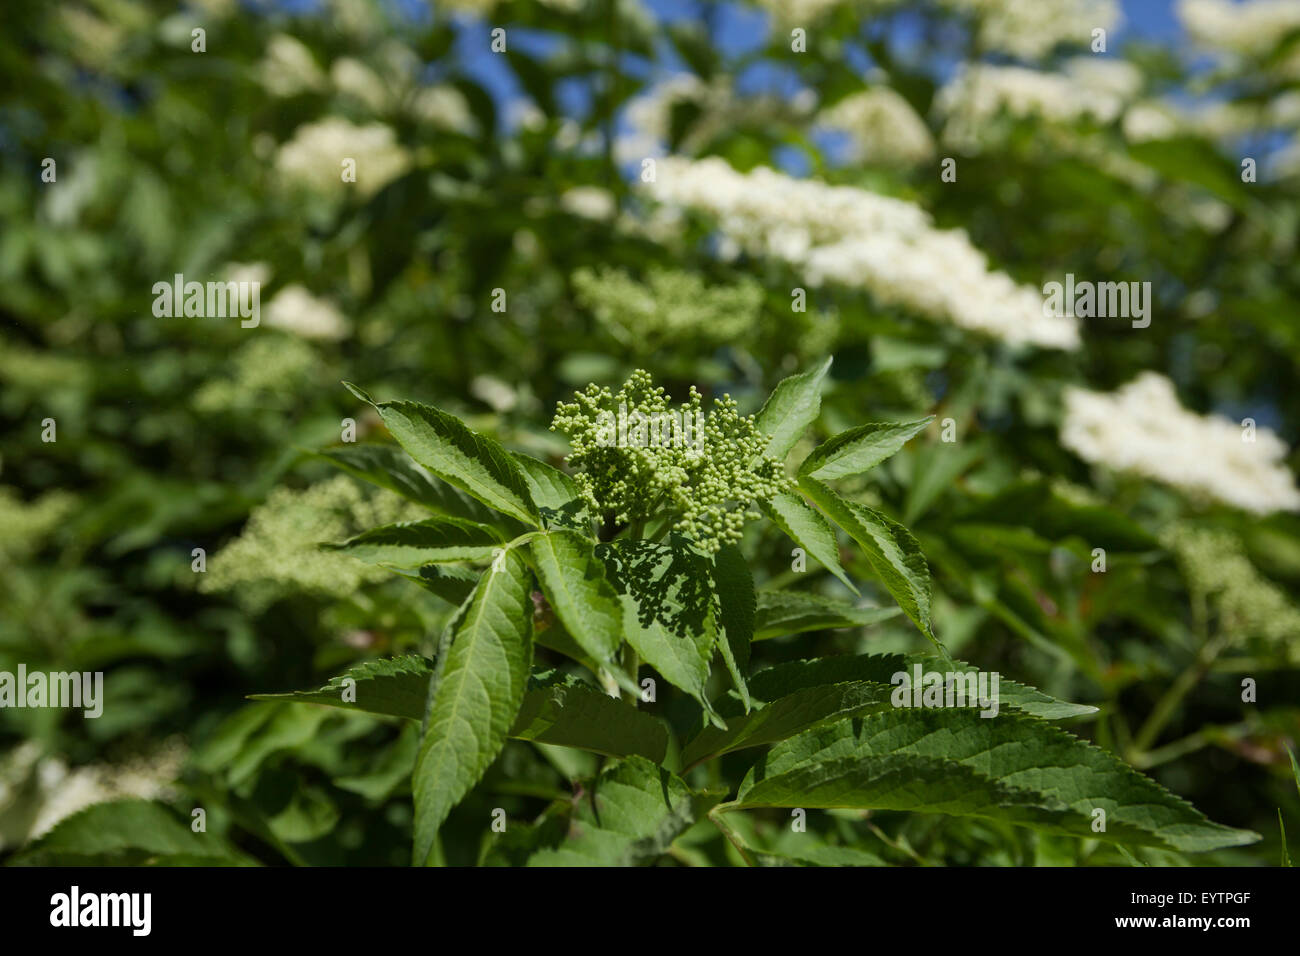 Musk Herb Plants Stock Photos & Musk Herb Plants Stock Images - Alamy